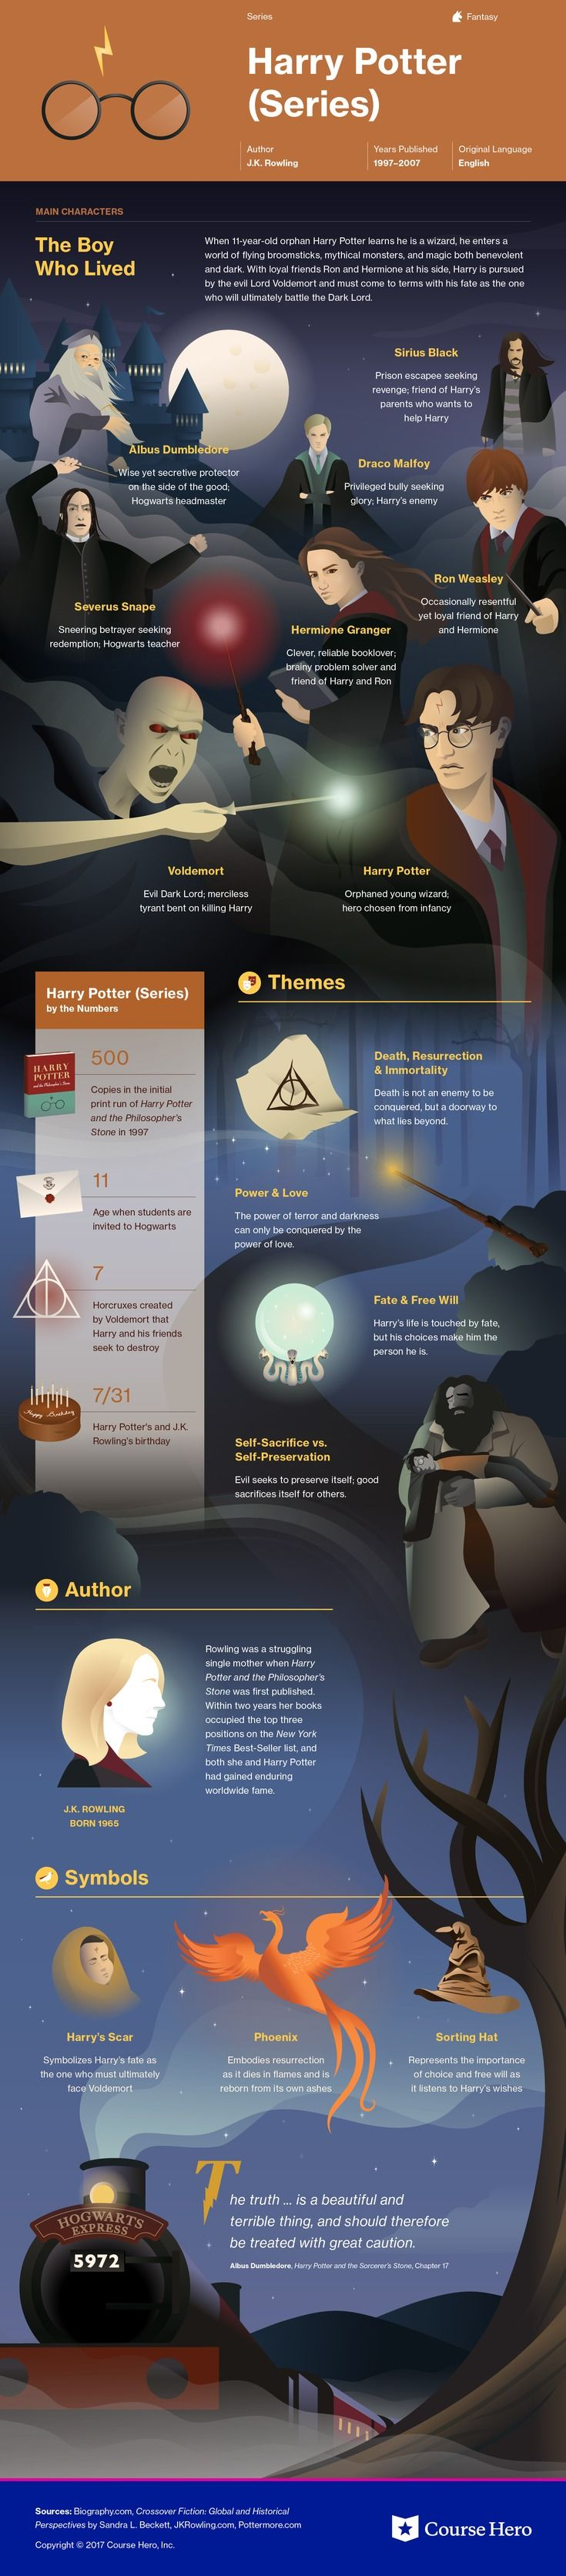 This @CourseHero infographic on Harry Potter (Series) is both visually stunning and informative!